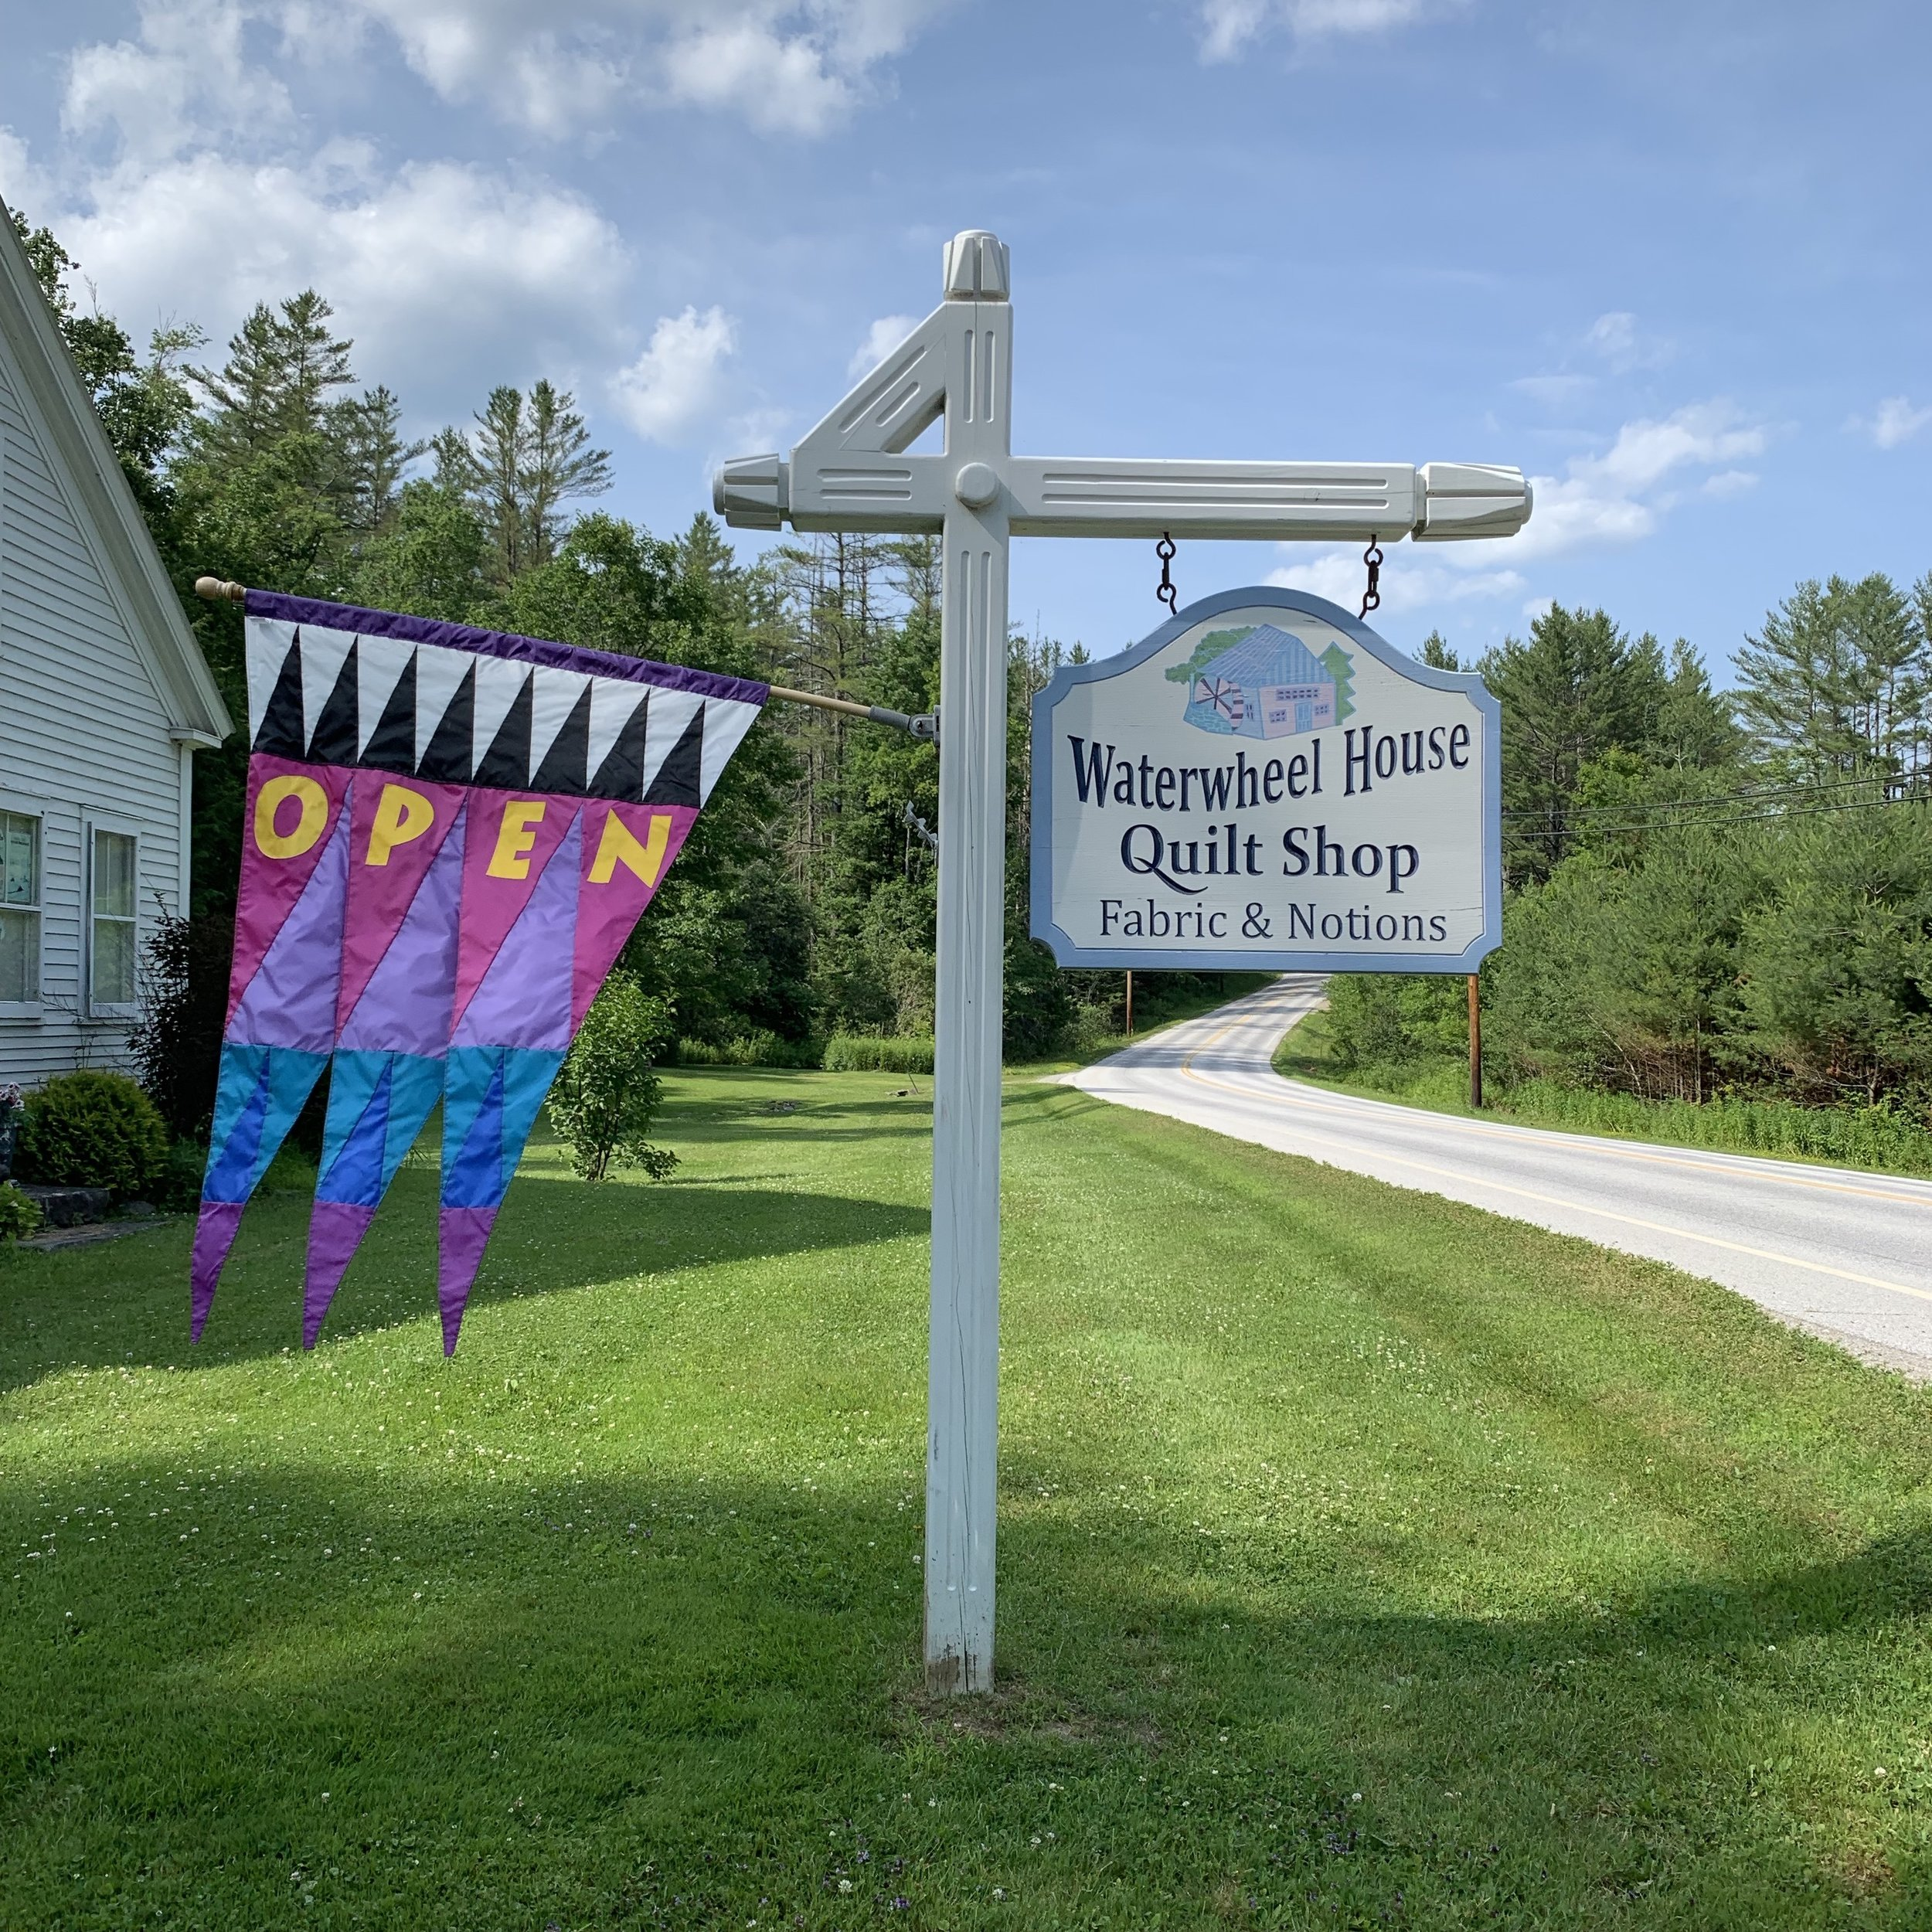 Sign in front of Waterwheel House Quilt Shop